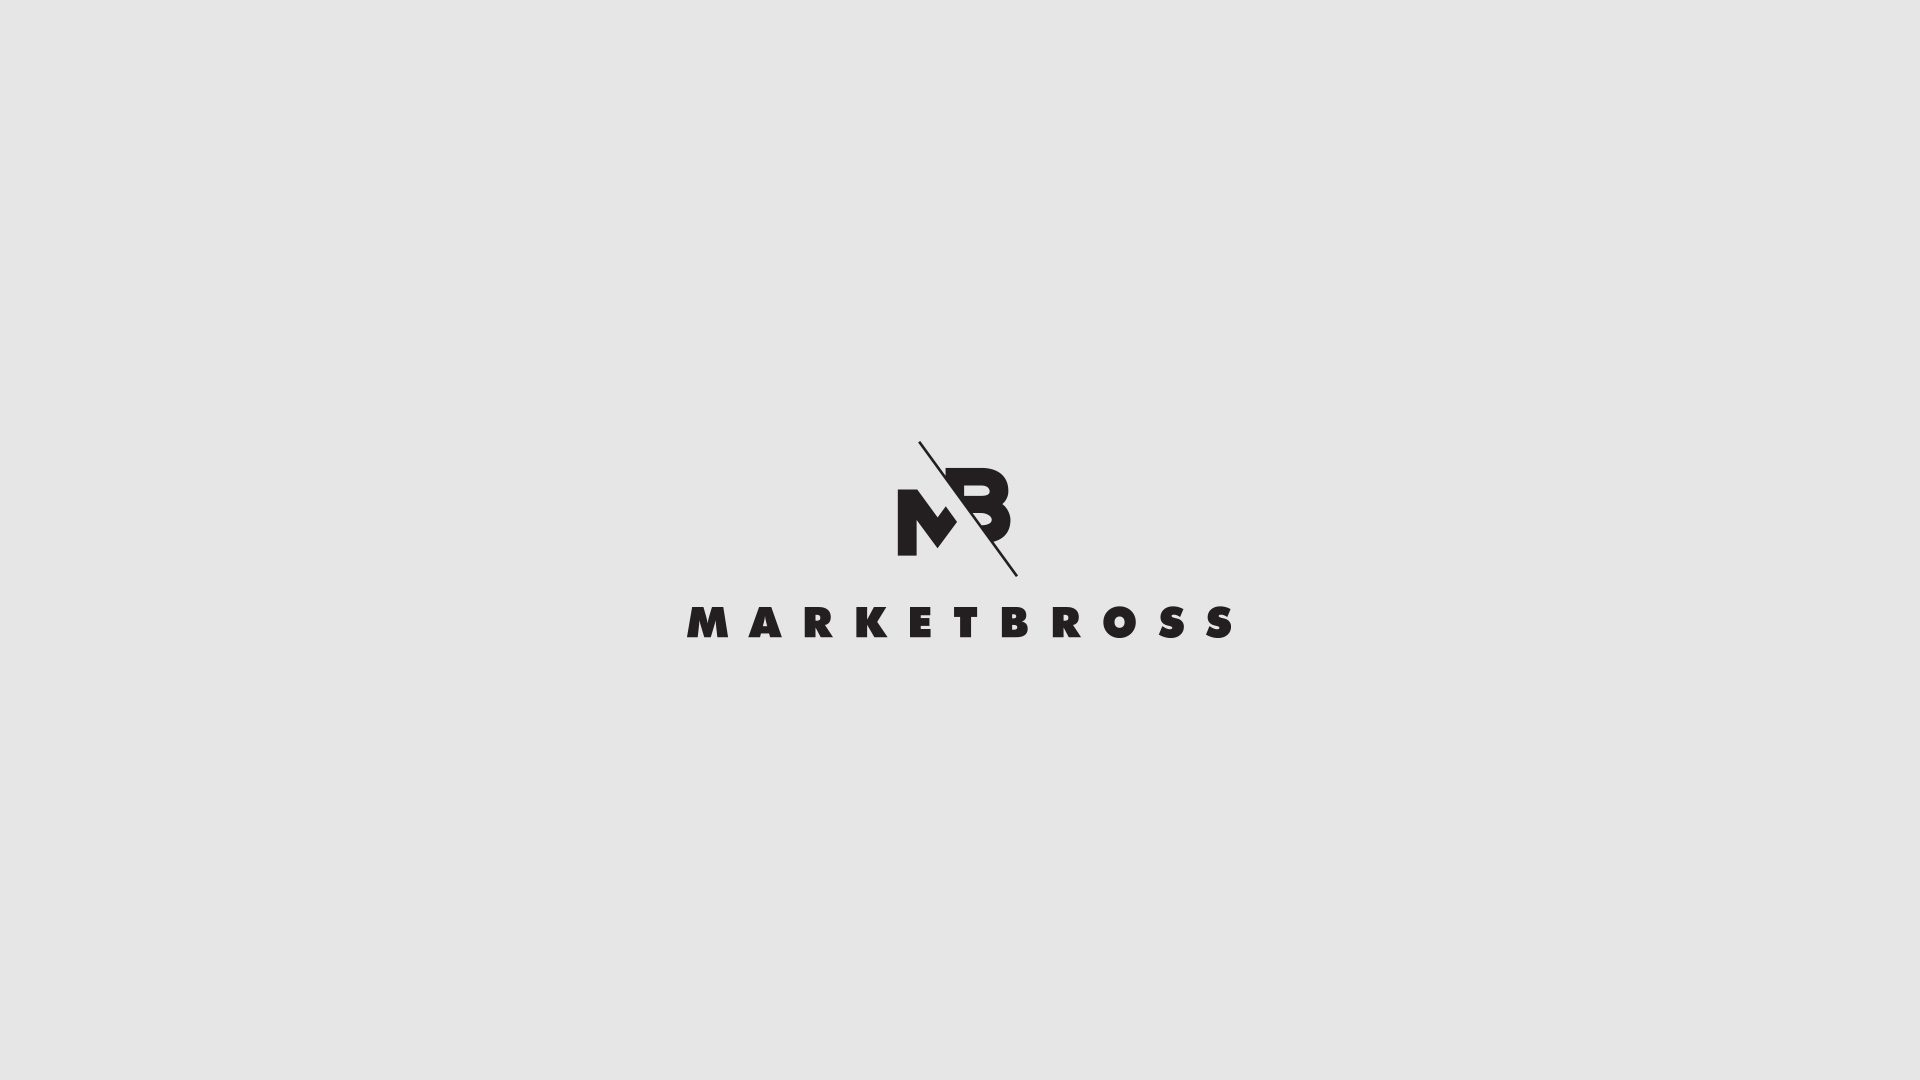 marketbross